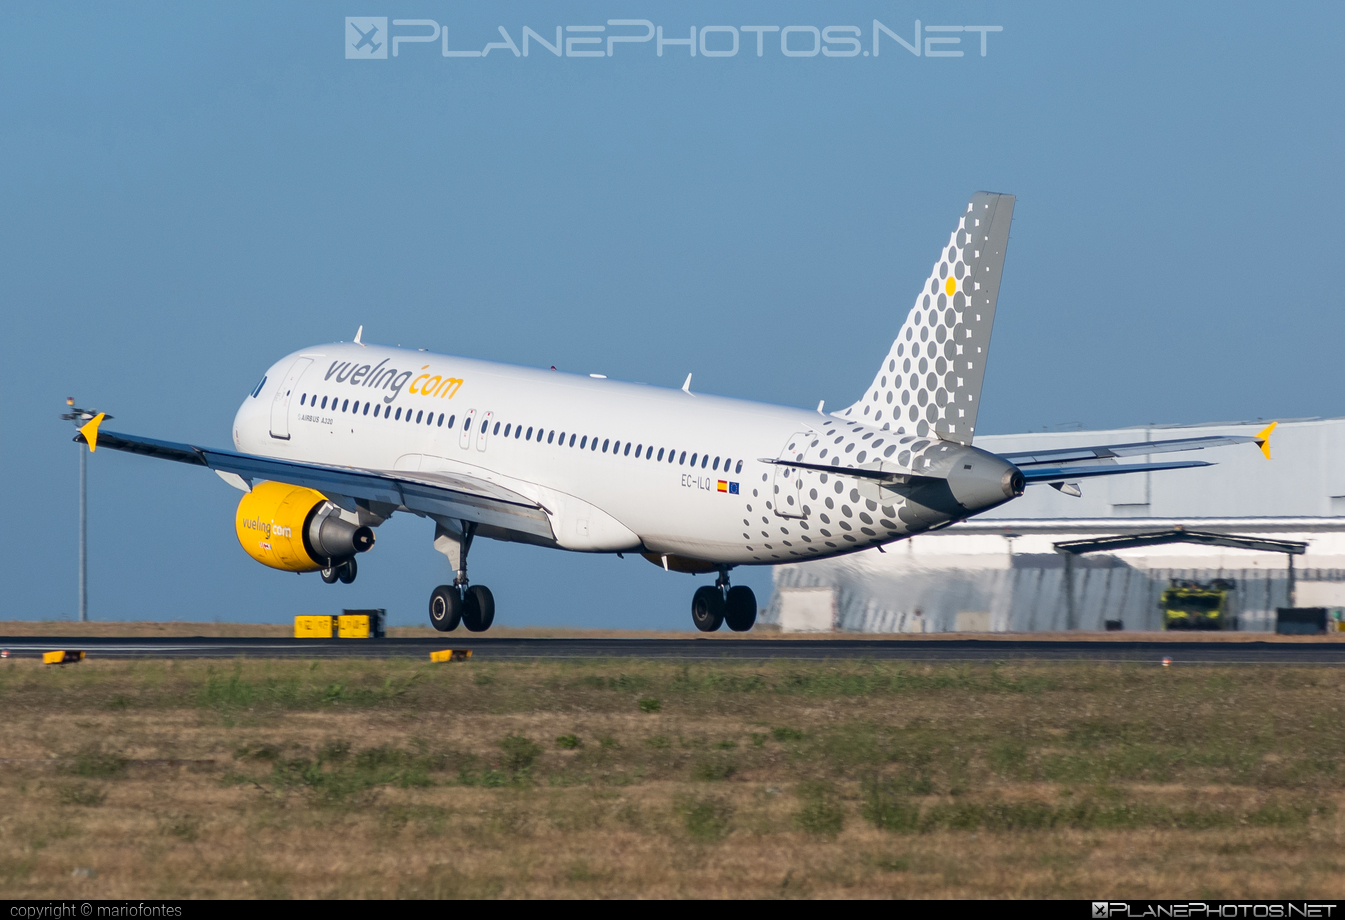 Airbus A320-214 - EC-ILQ operated by Vueling Airlines #a320 #a320family #airbus #airbus320 #vueling #vuelingairlines